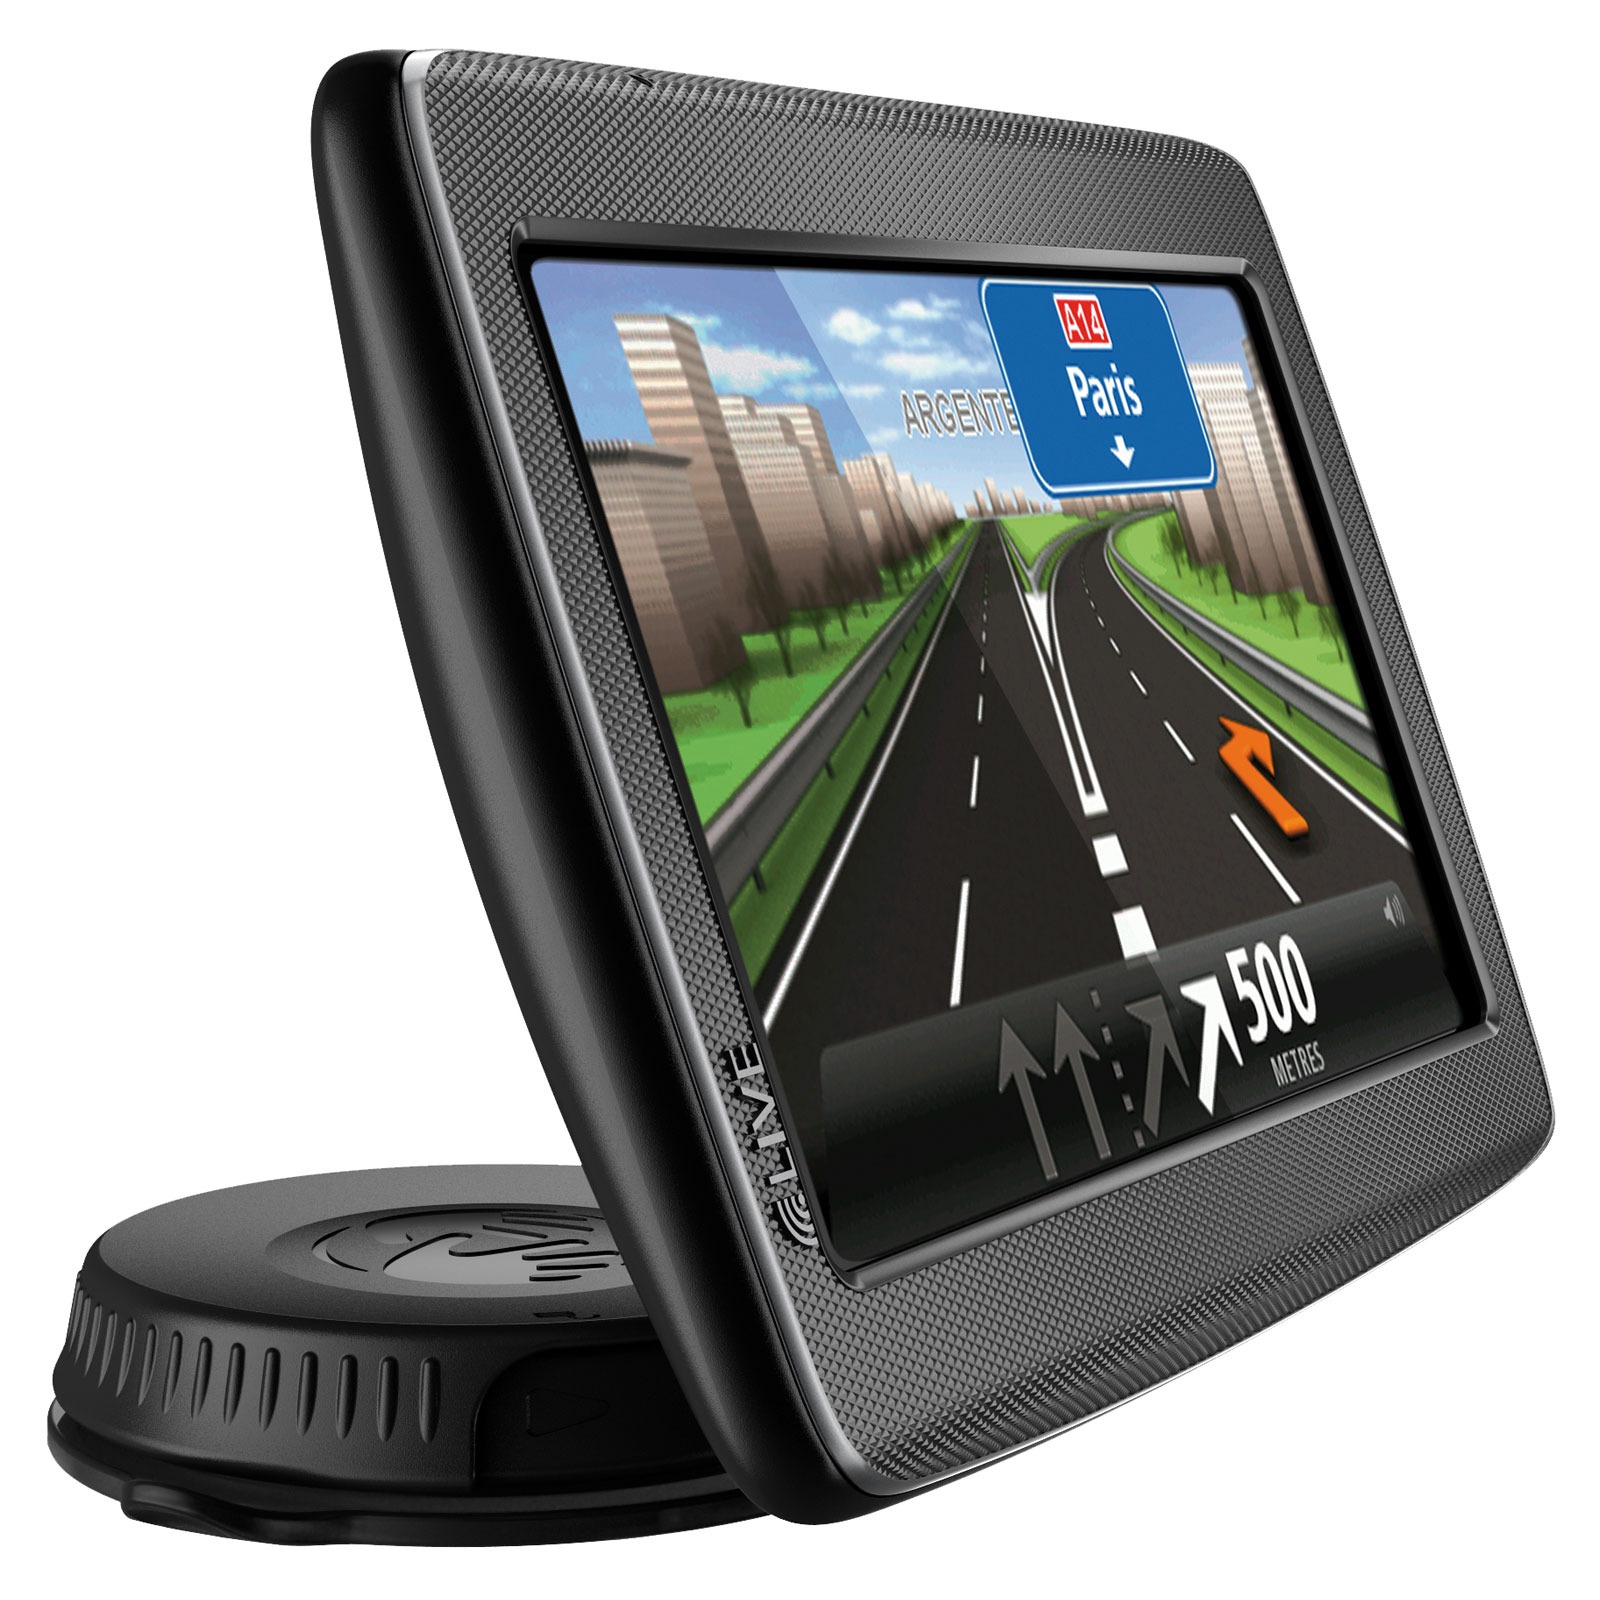 tomtom go live 820 europe gps tomtom sur. Black Bedroom Furniture Sets. Home Design Ideas